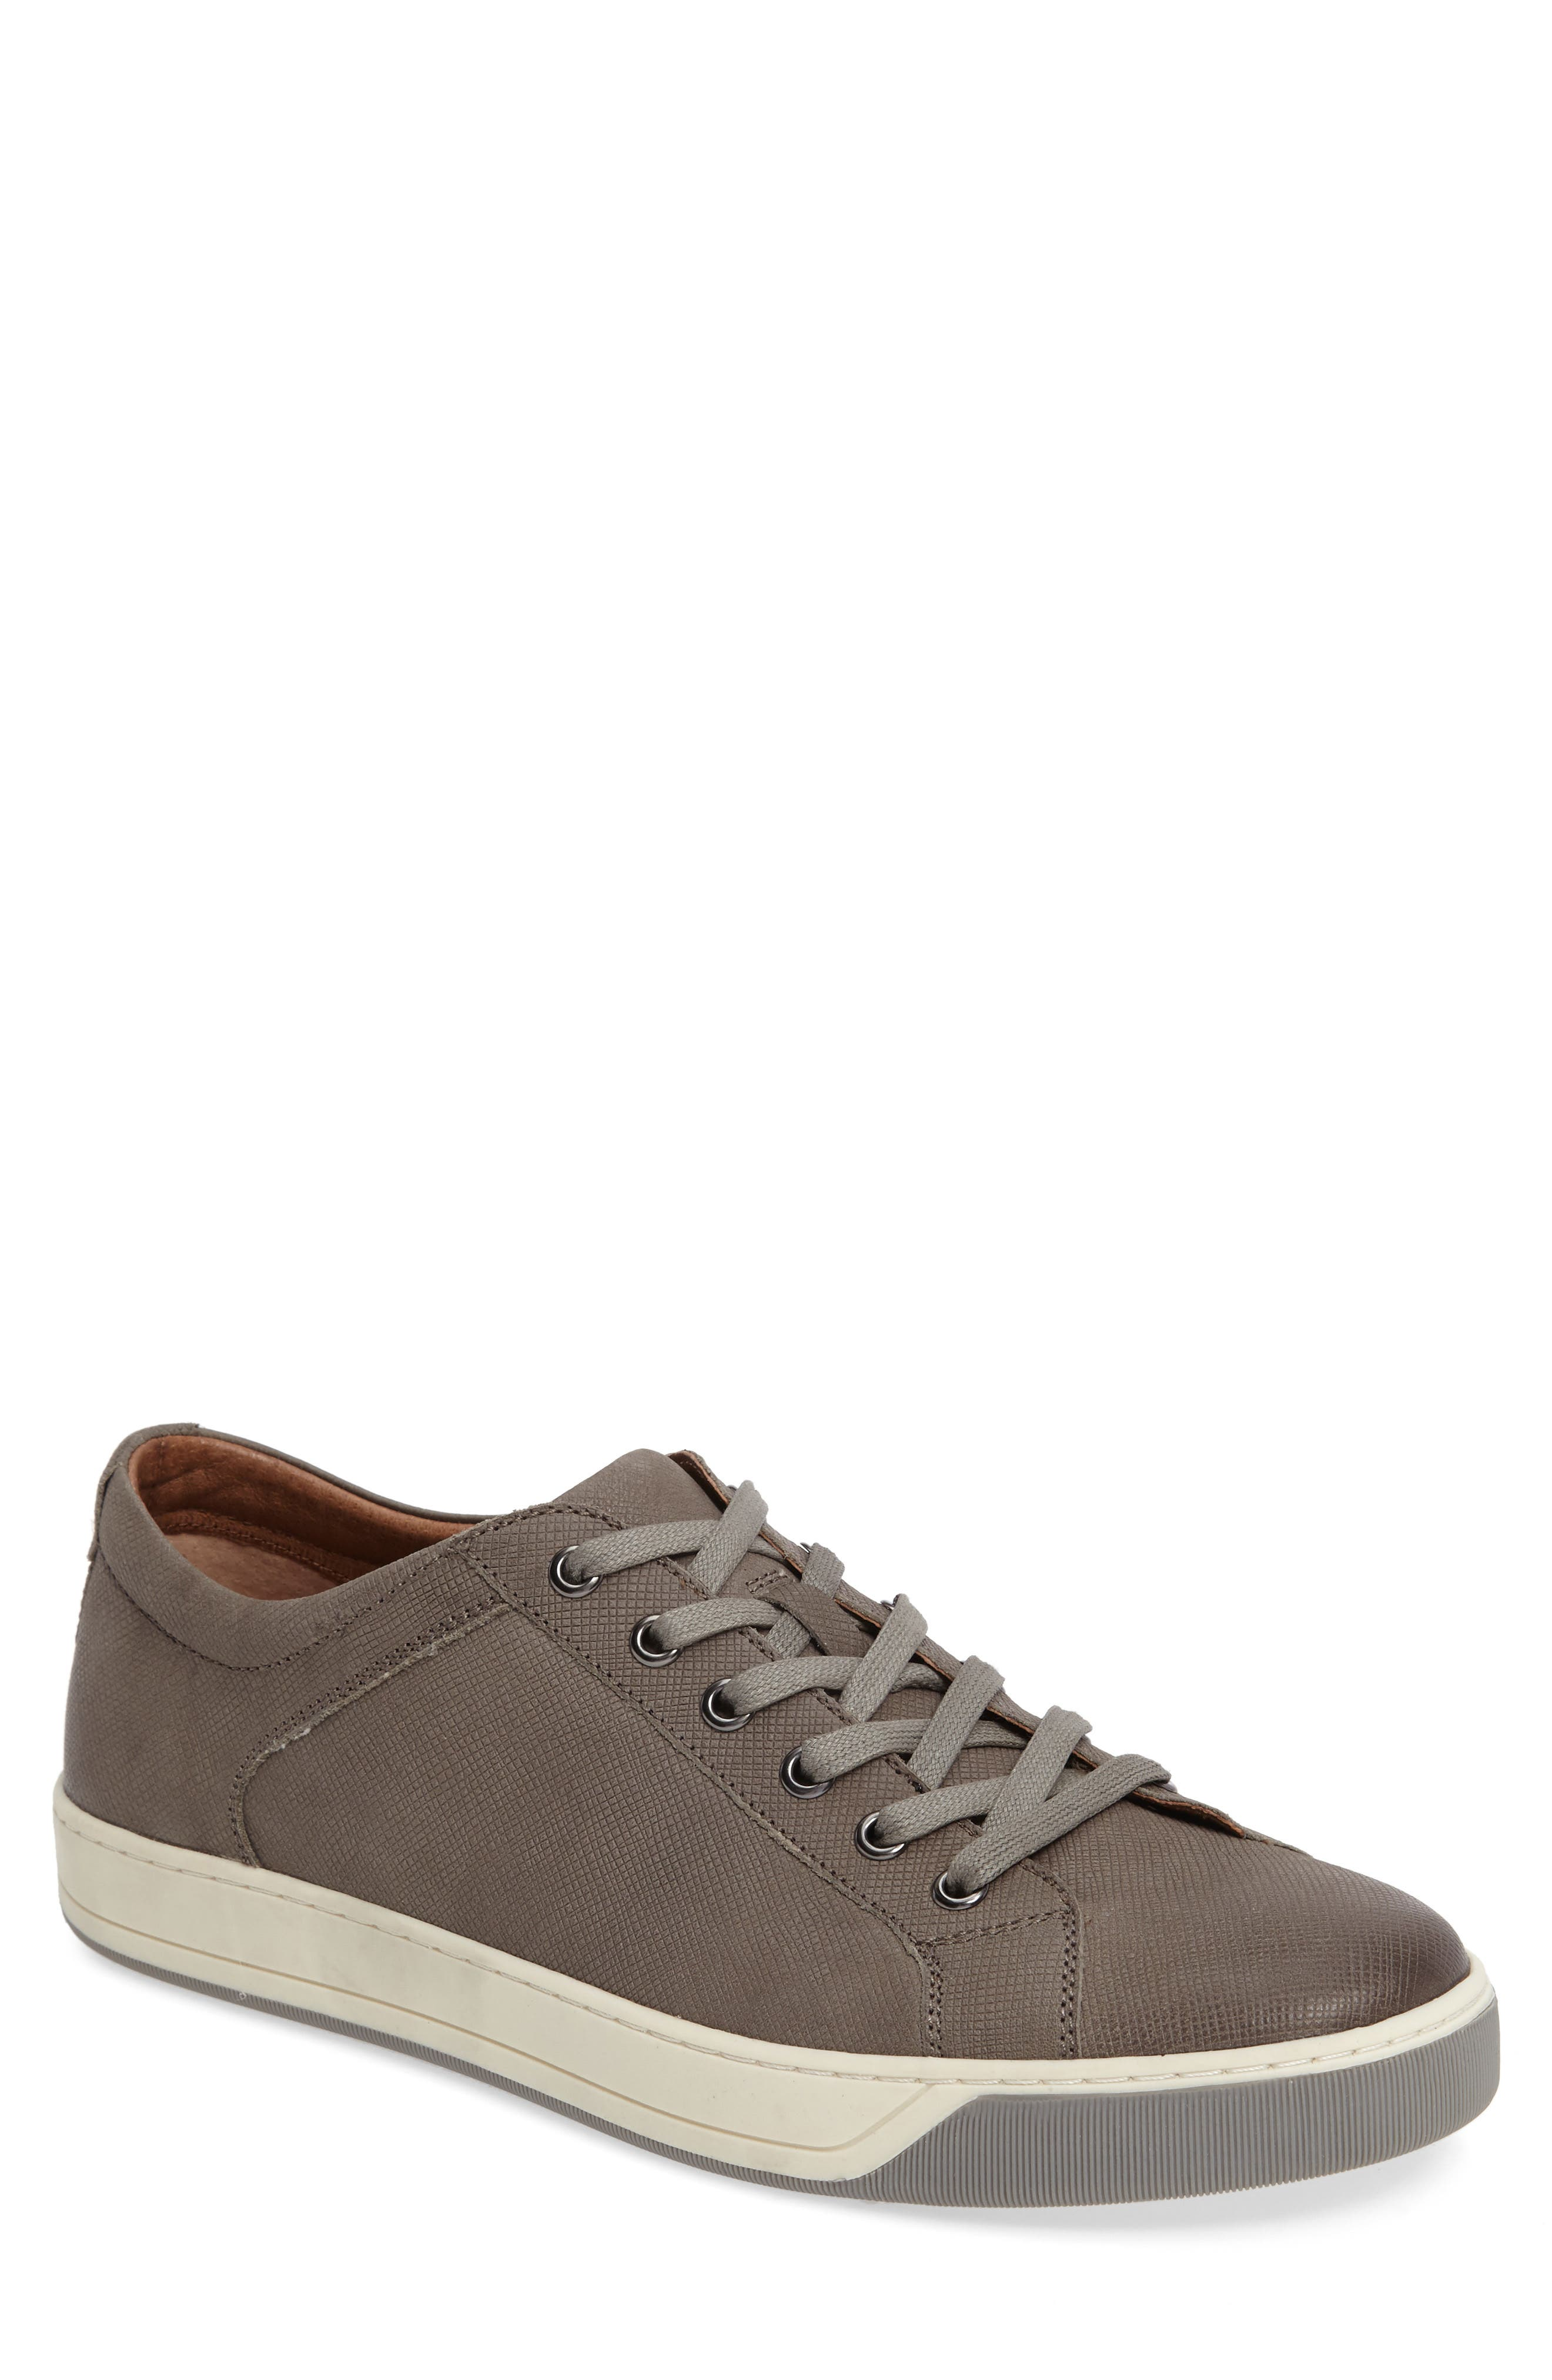 Johnston & Murphy Allister Sneaker (Men)